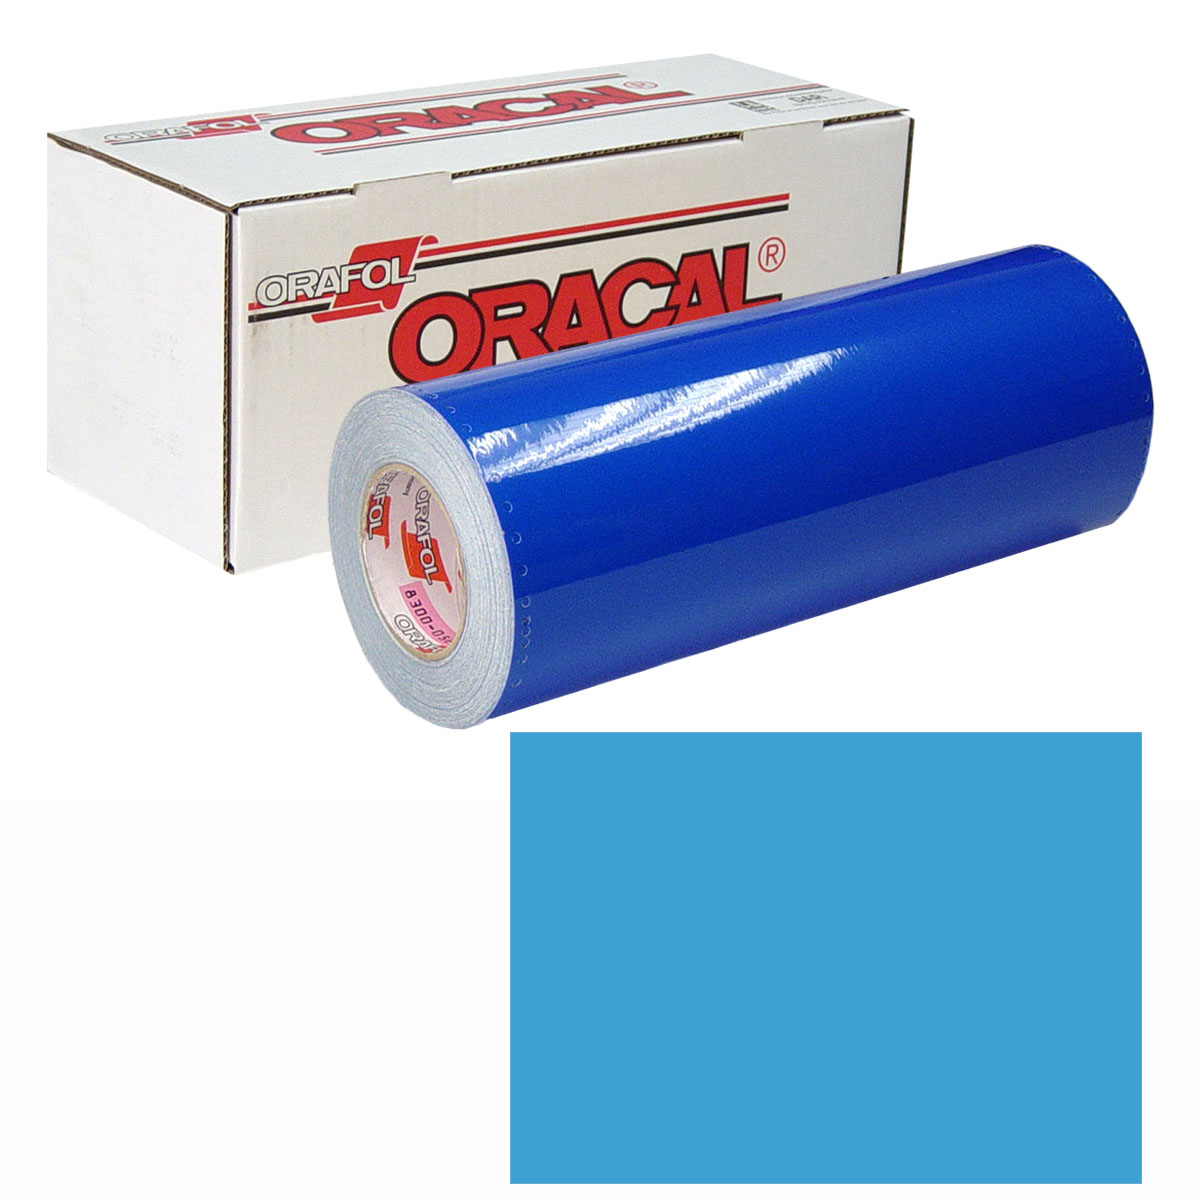 ORACAL 631 Unp 30in X 10yd 056 Ice Blue